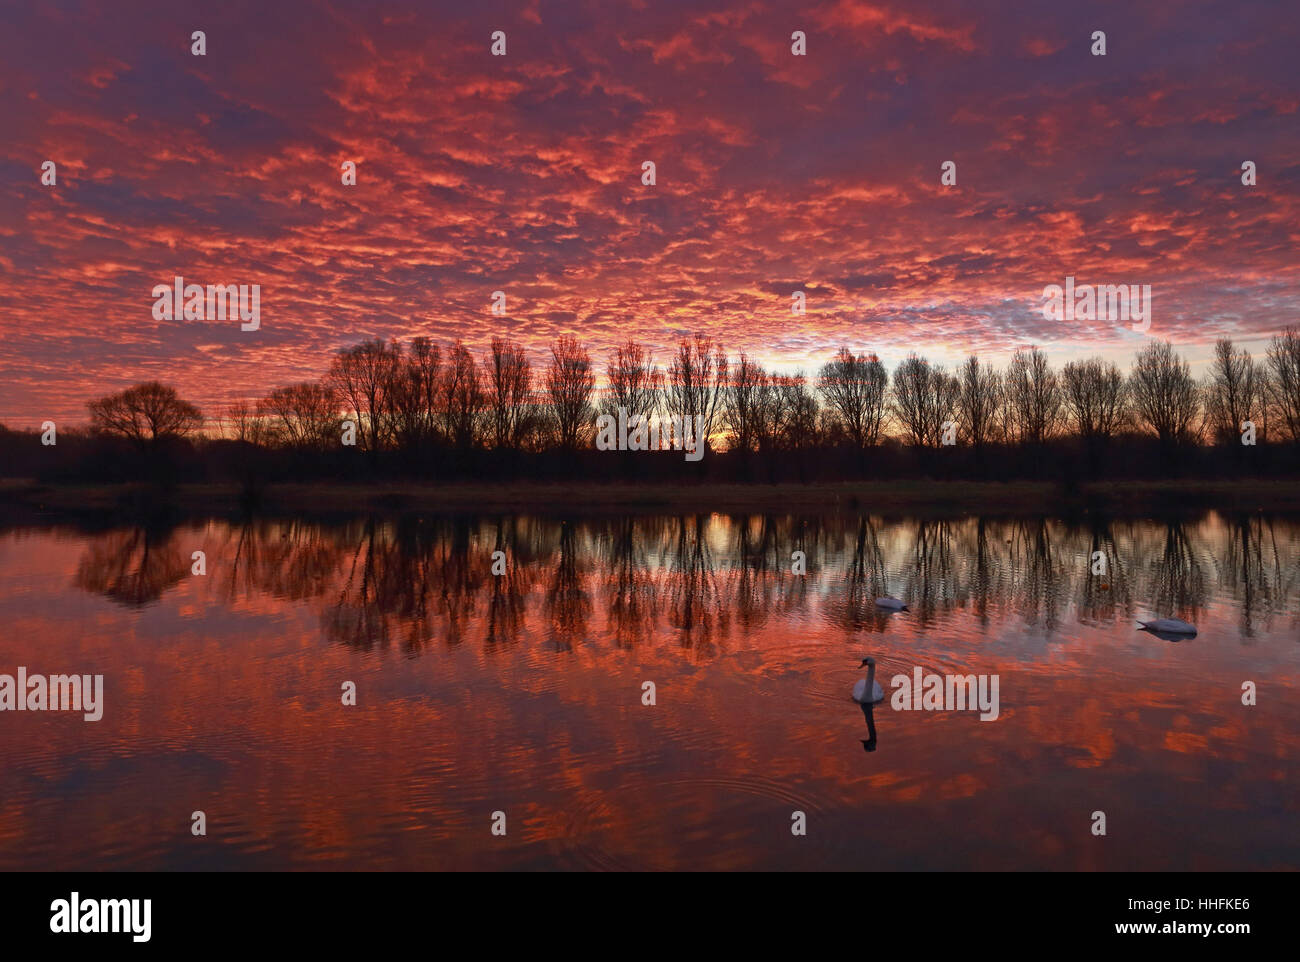 Peterborough, UK. 18th January 2017. The sky looked on fire this morning, as it made the clouds glow red, as swans - Stock Image